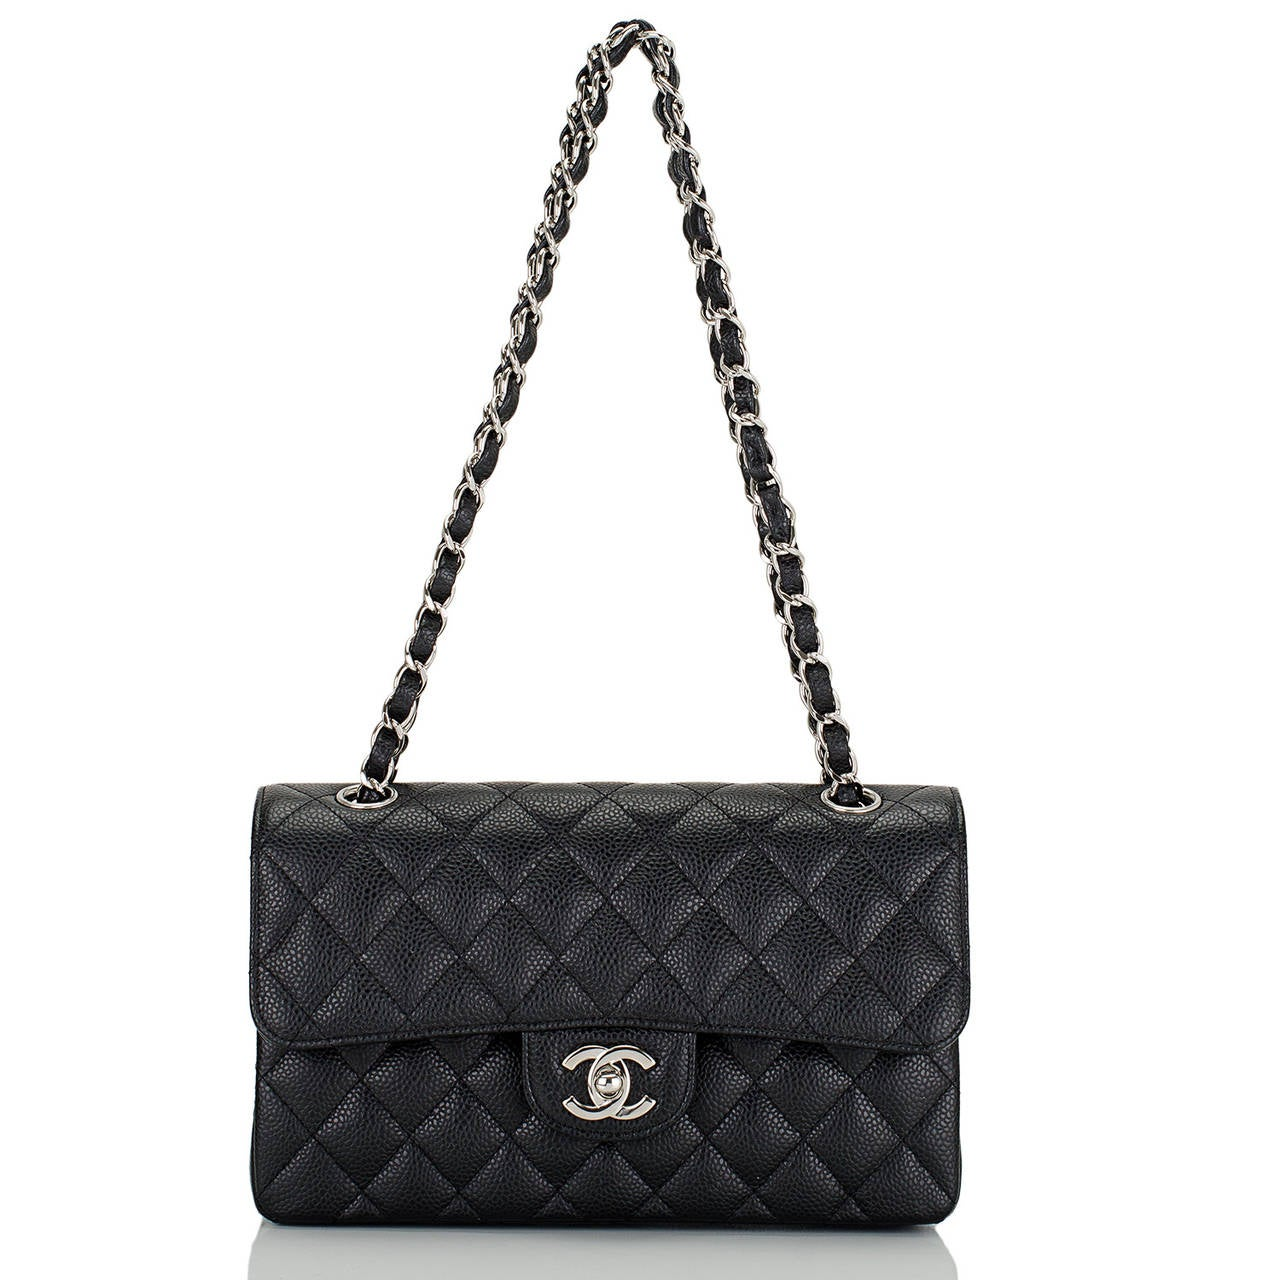 Chanel Black Quilted Caviar Small Classic Double Flap Bag For Sale 1